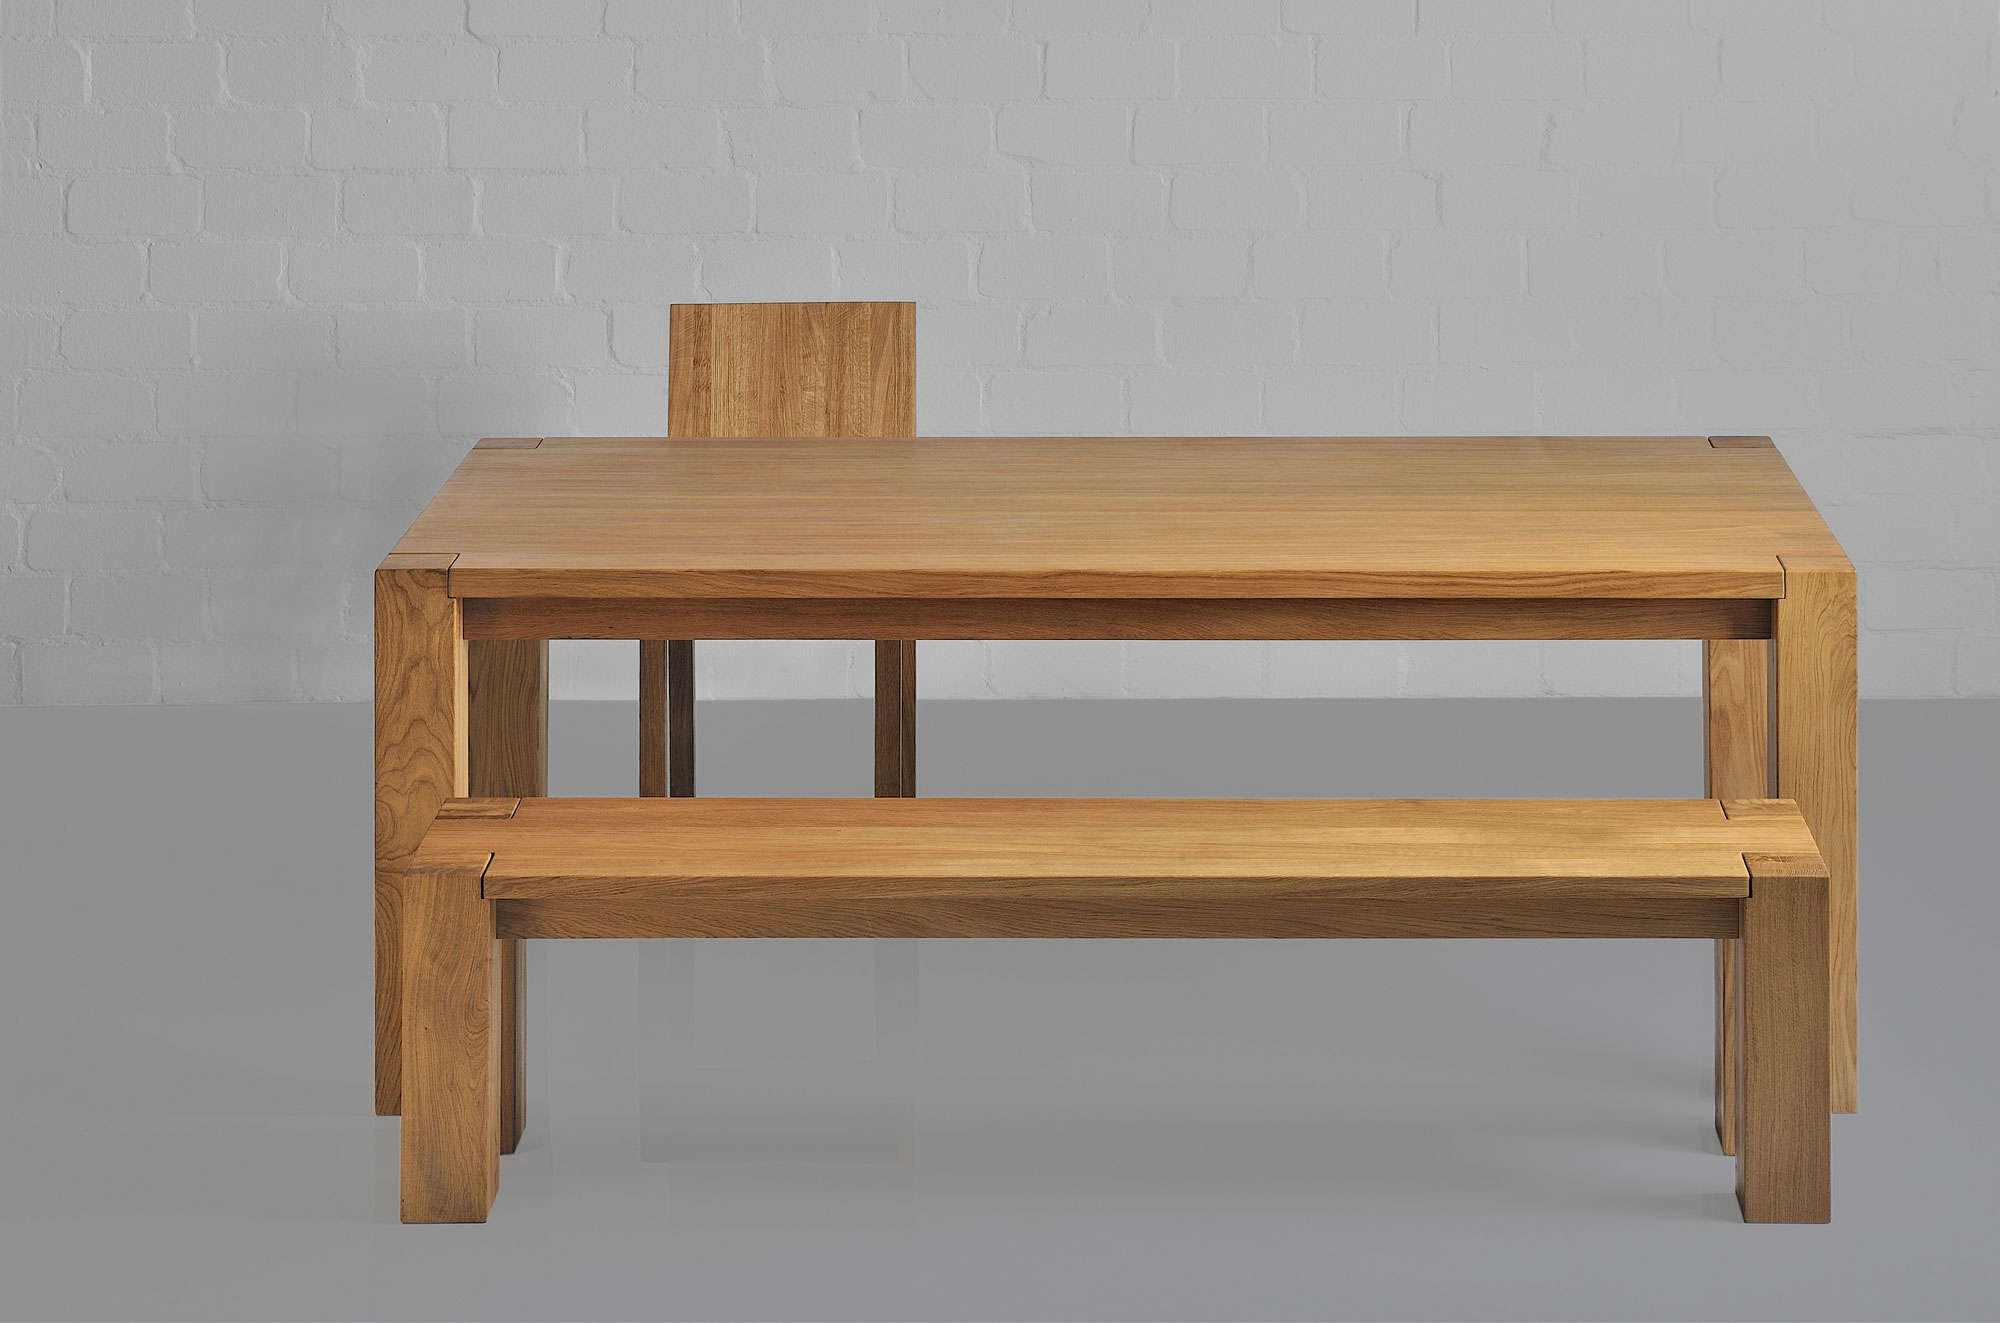 Rustic Oak Table TAURUS 4 B11X11 1365 custom made in solid wood by vitamin design